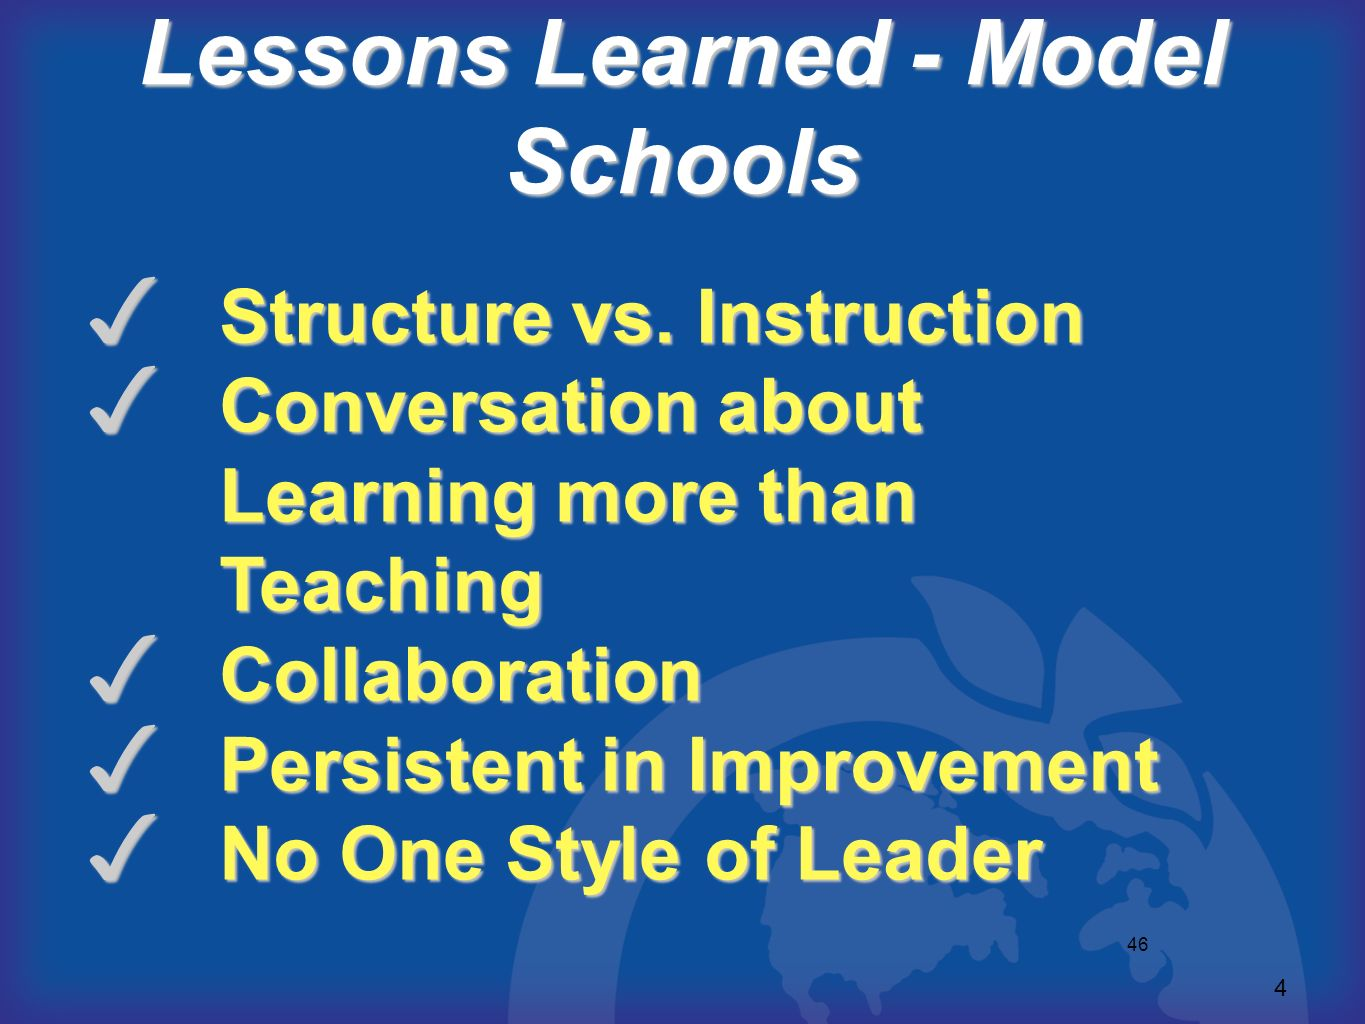 Lessons Learned - Model Schools